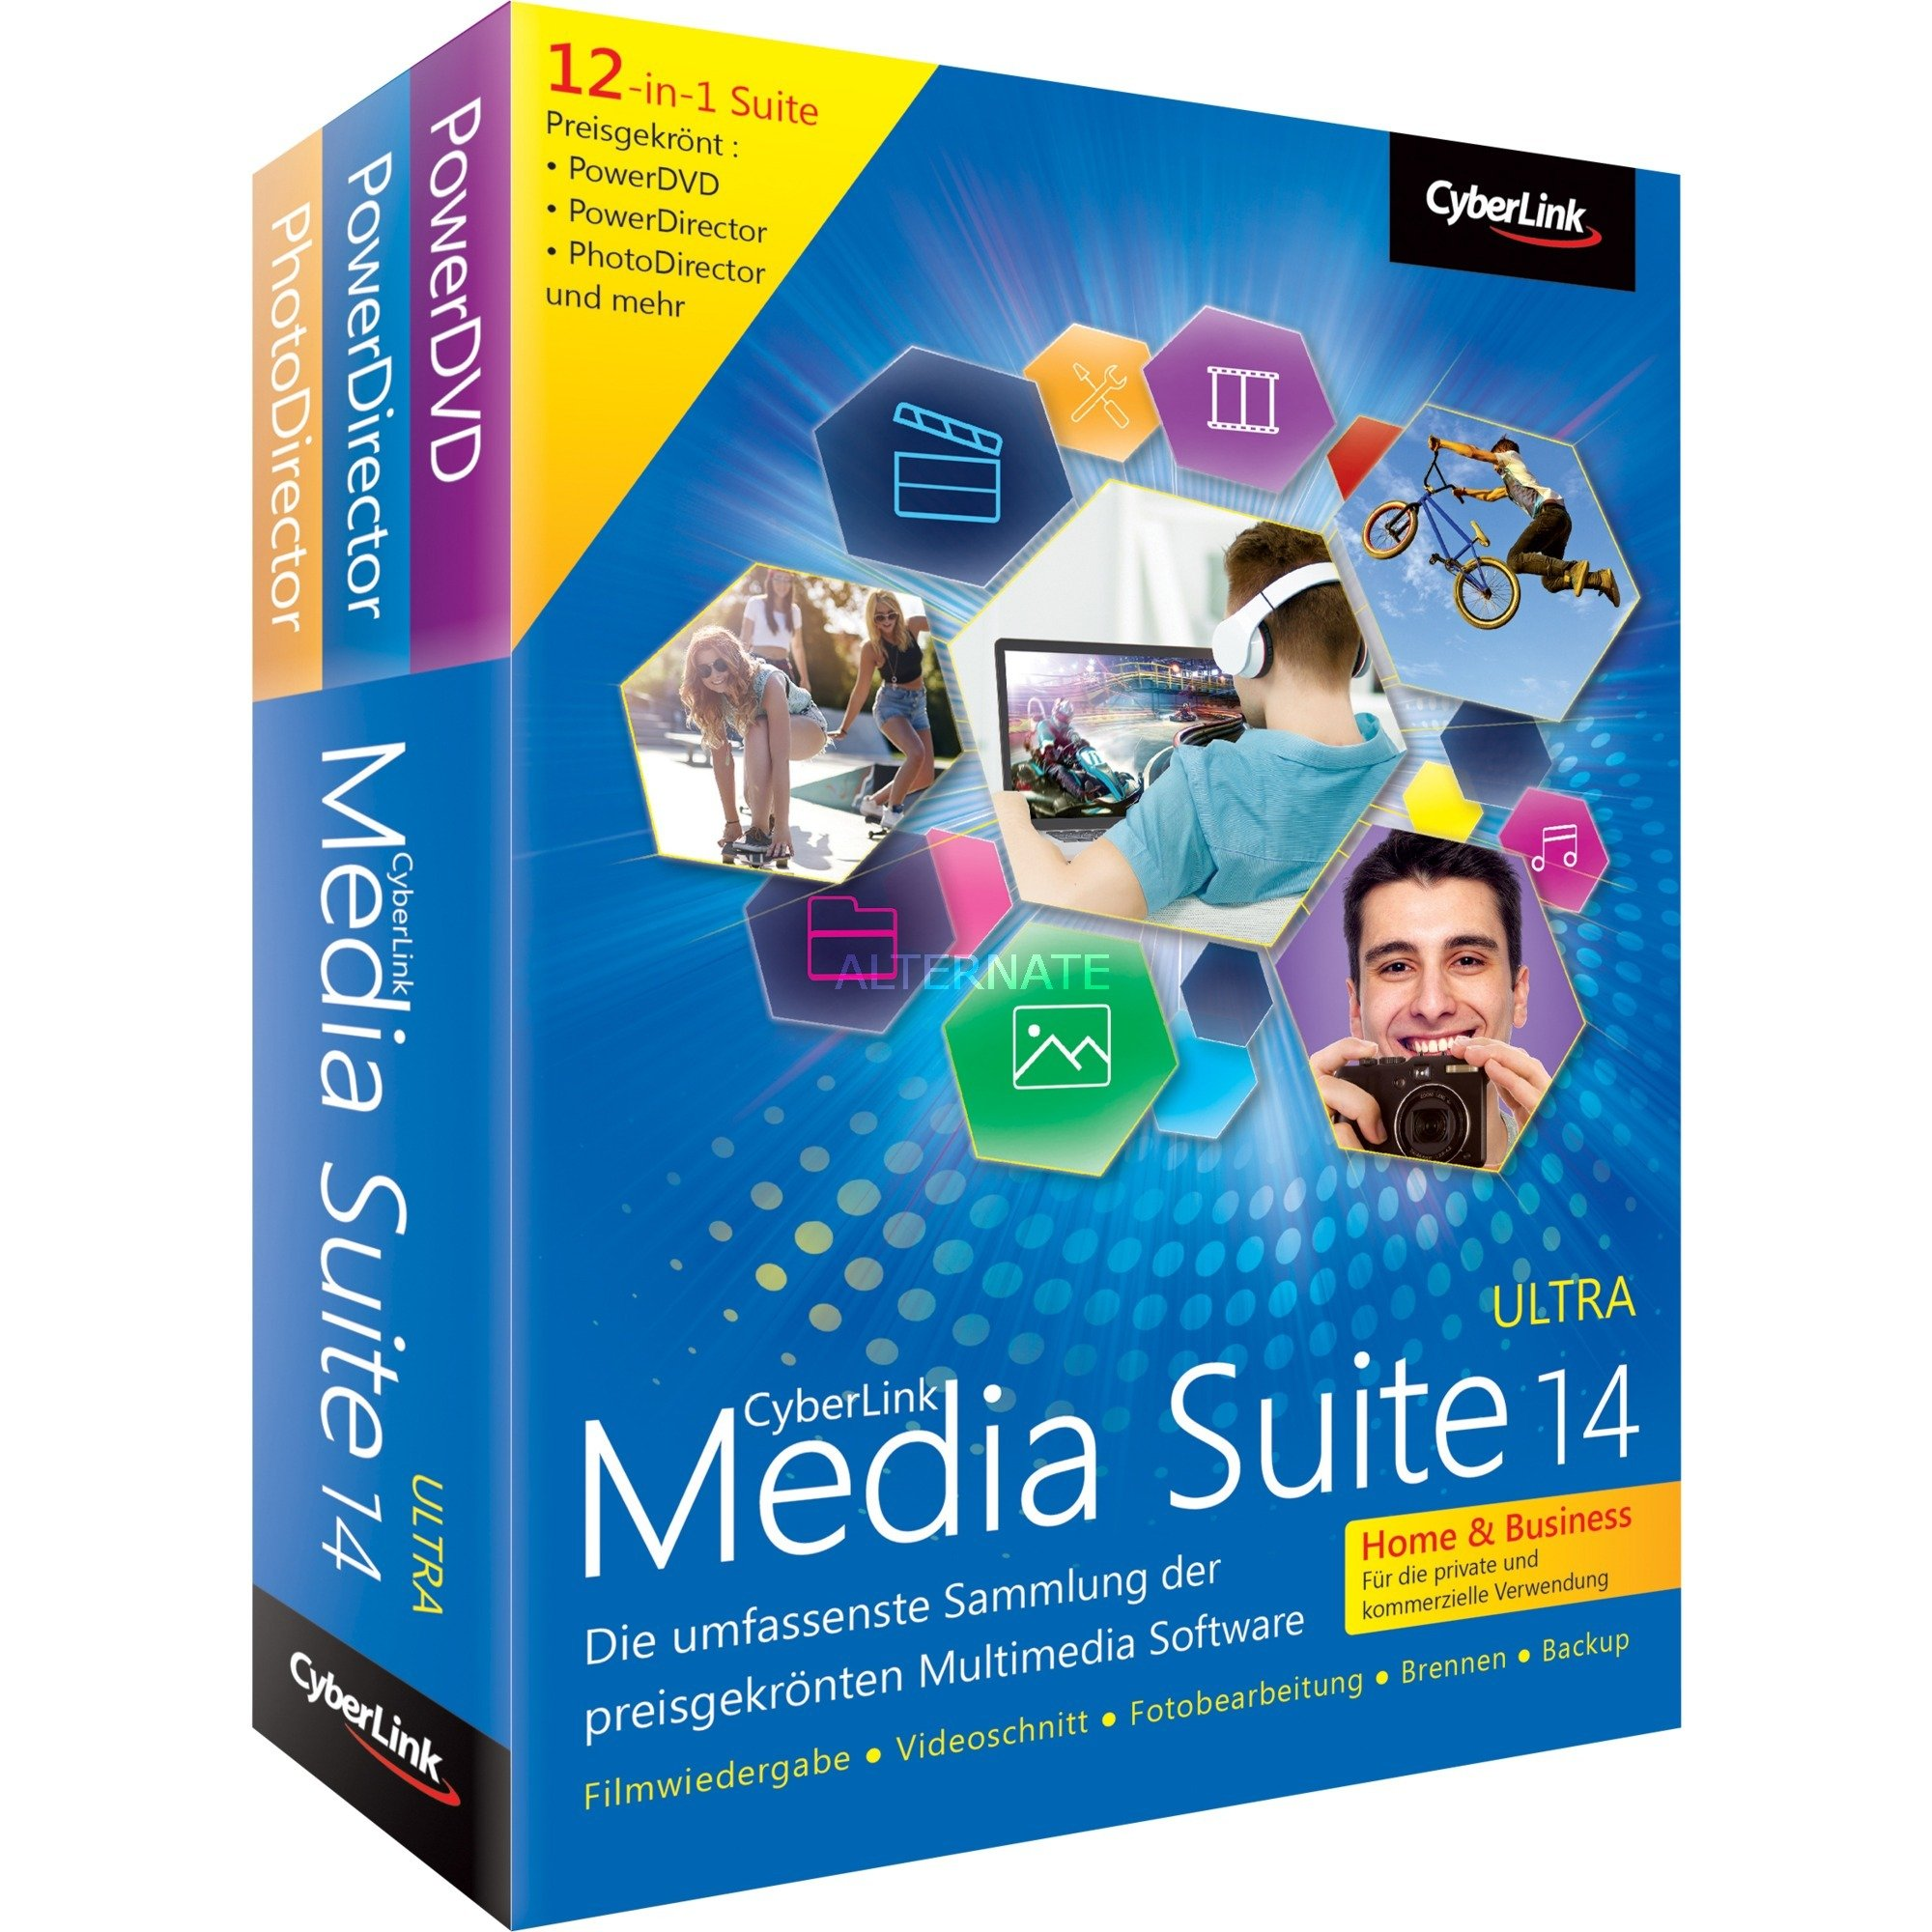 Media Suite 14 Ultra Home & Business